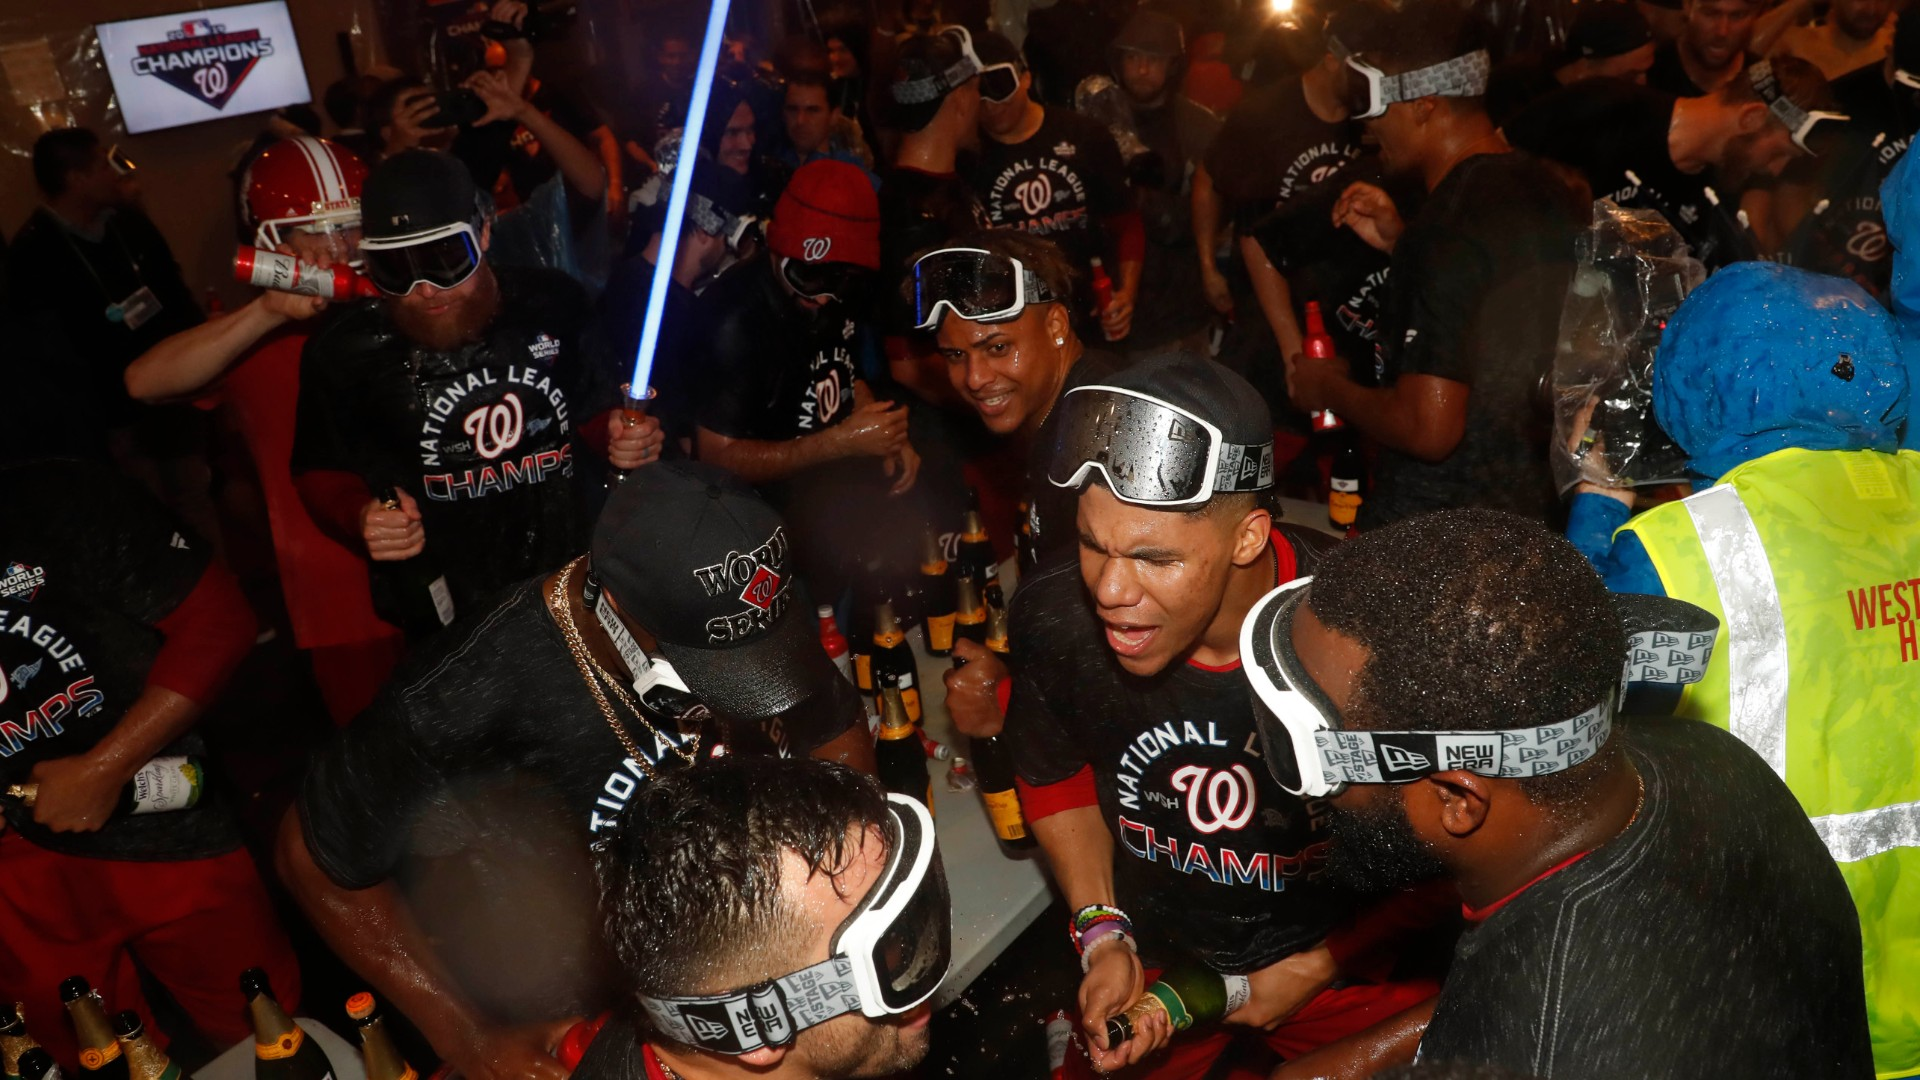 MLB may ban alcohol for celebrations, but Nationals capitalized with 5 in 2019